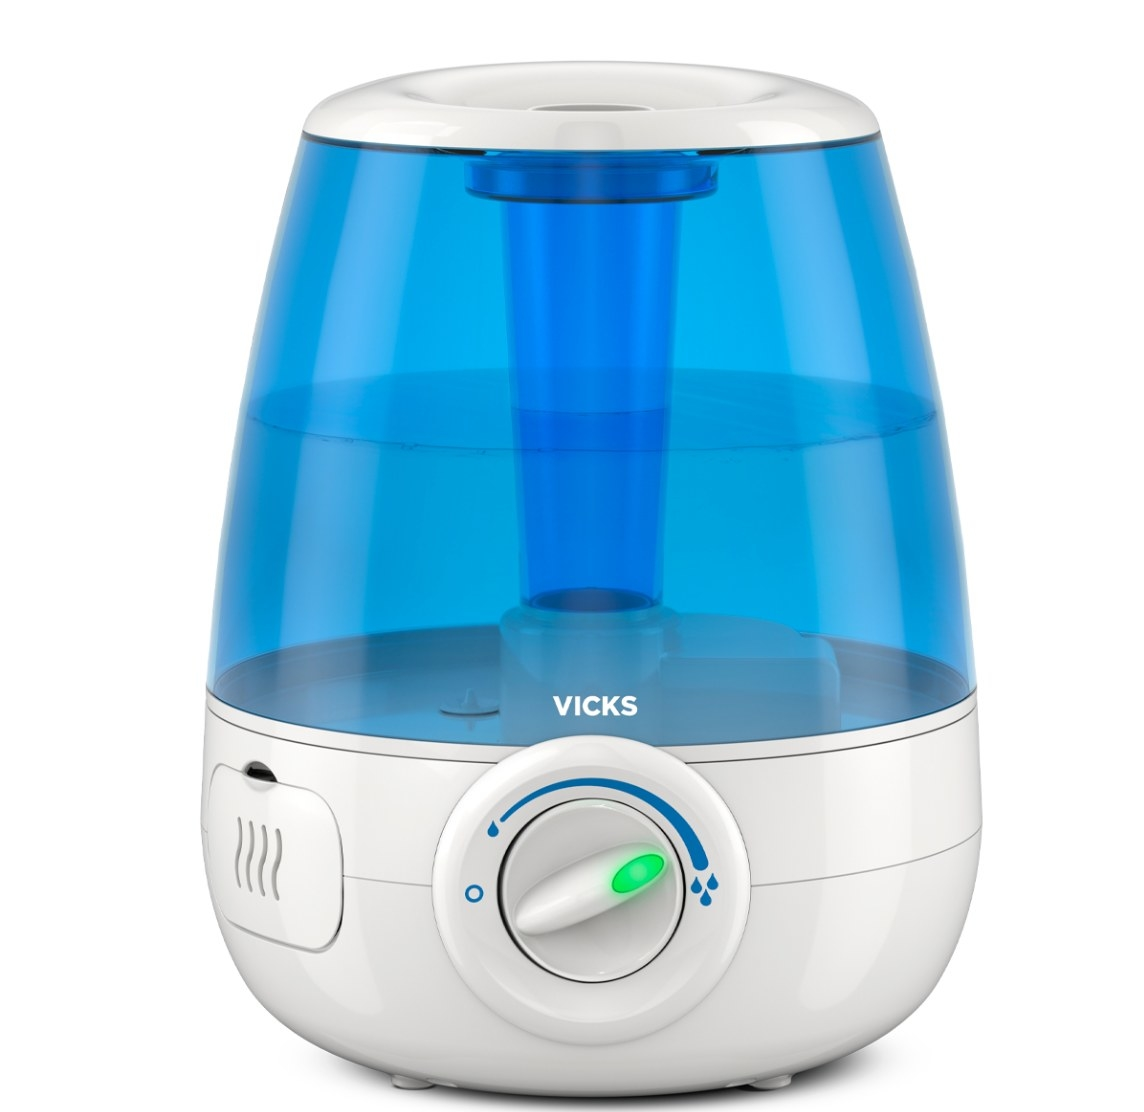 The cool-mist humidifier